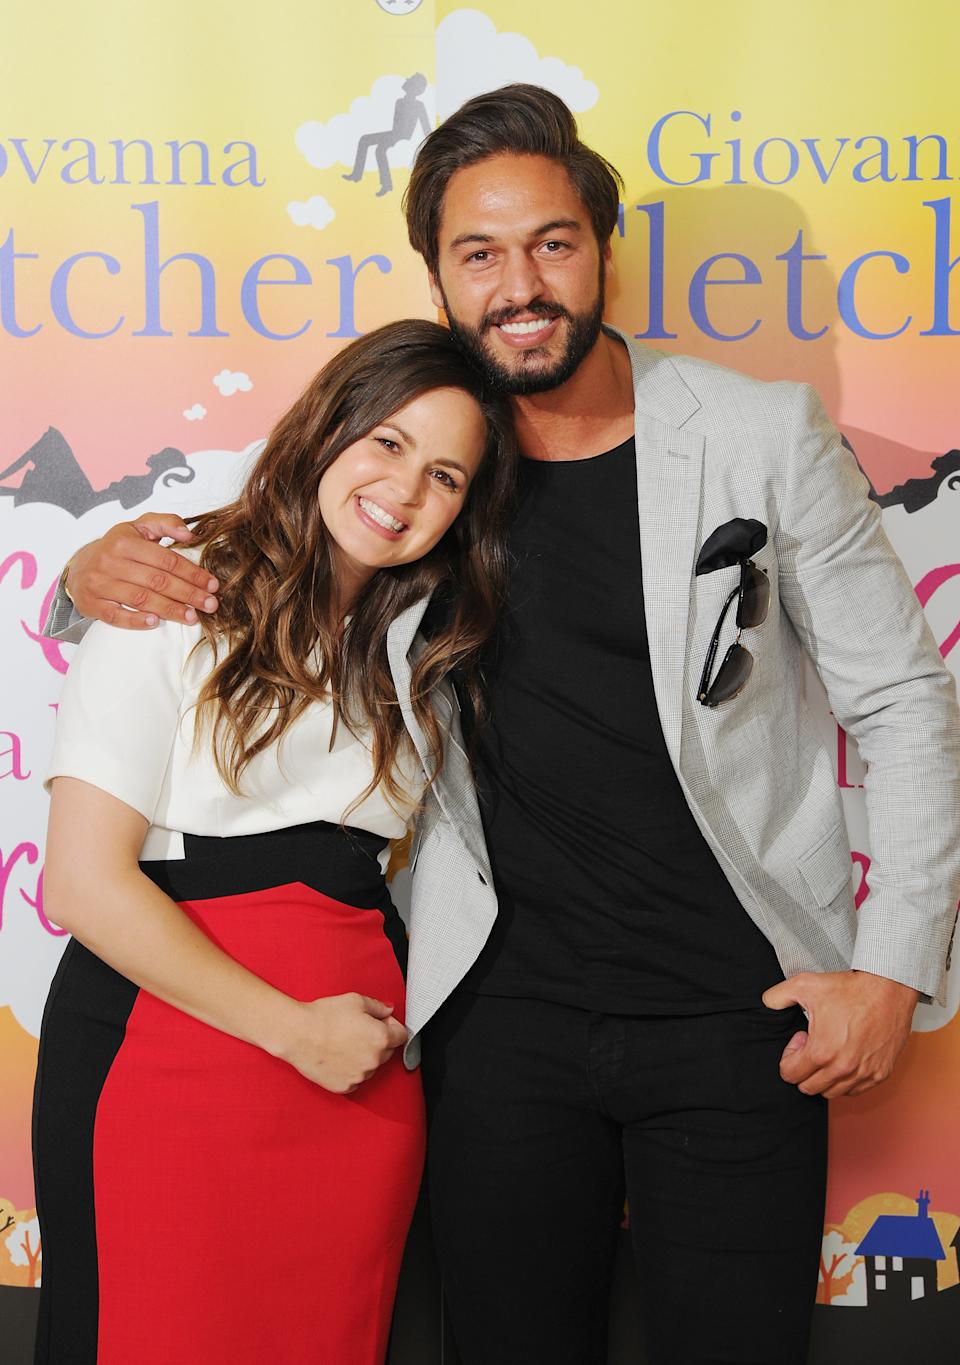 """LONDON, ENGLAND - JUNE 18:  Giovanna Fletcher and Mario Falcone attend the launch of Giovanna Fletcher's """"Dream A Little Dream"""" at  on June 18, 2015 in London, England.  (Photo by Eamonn McCormack/WireImage)"""